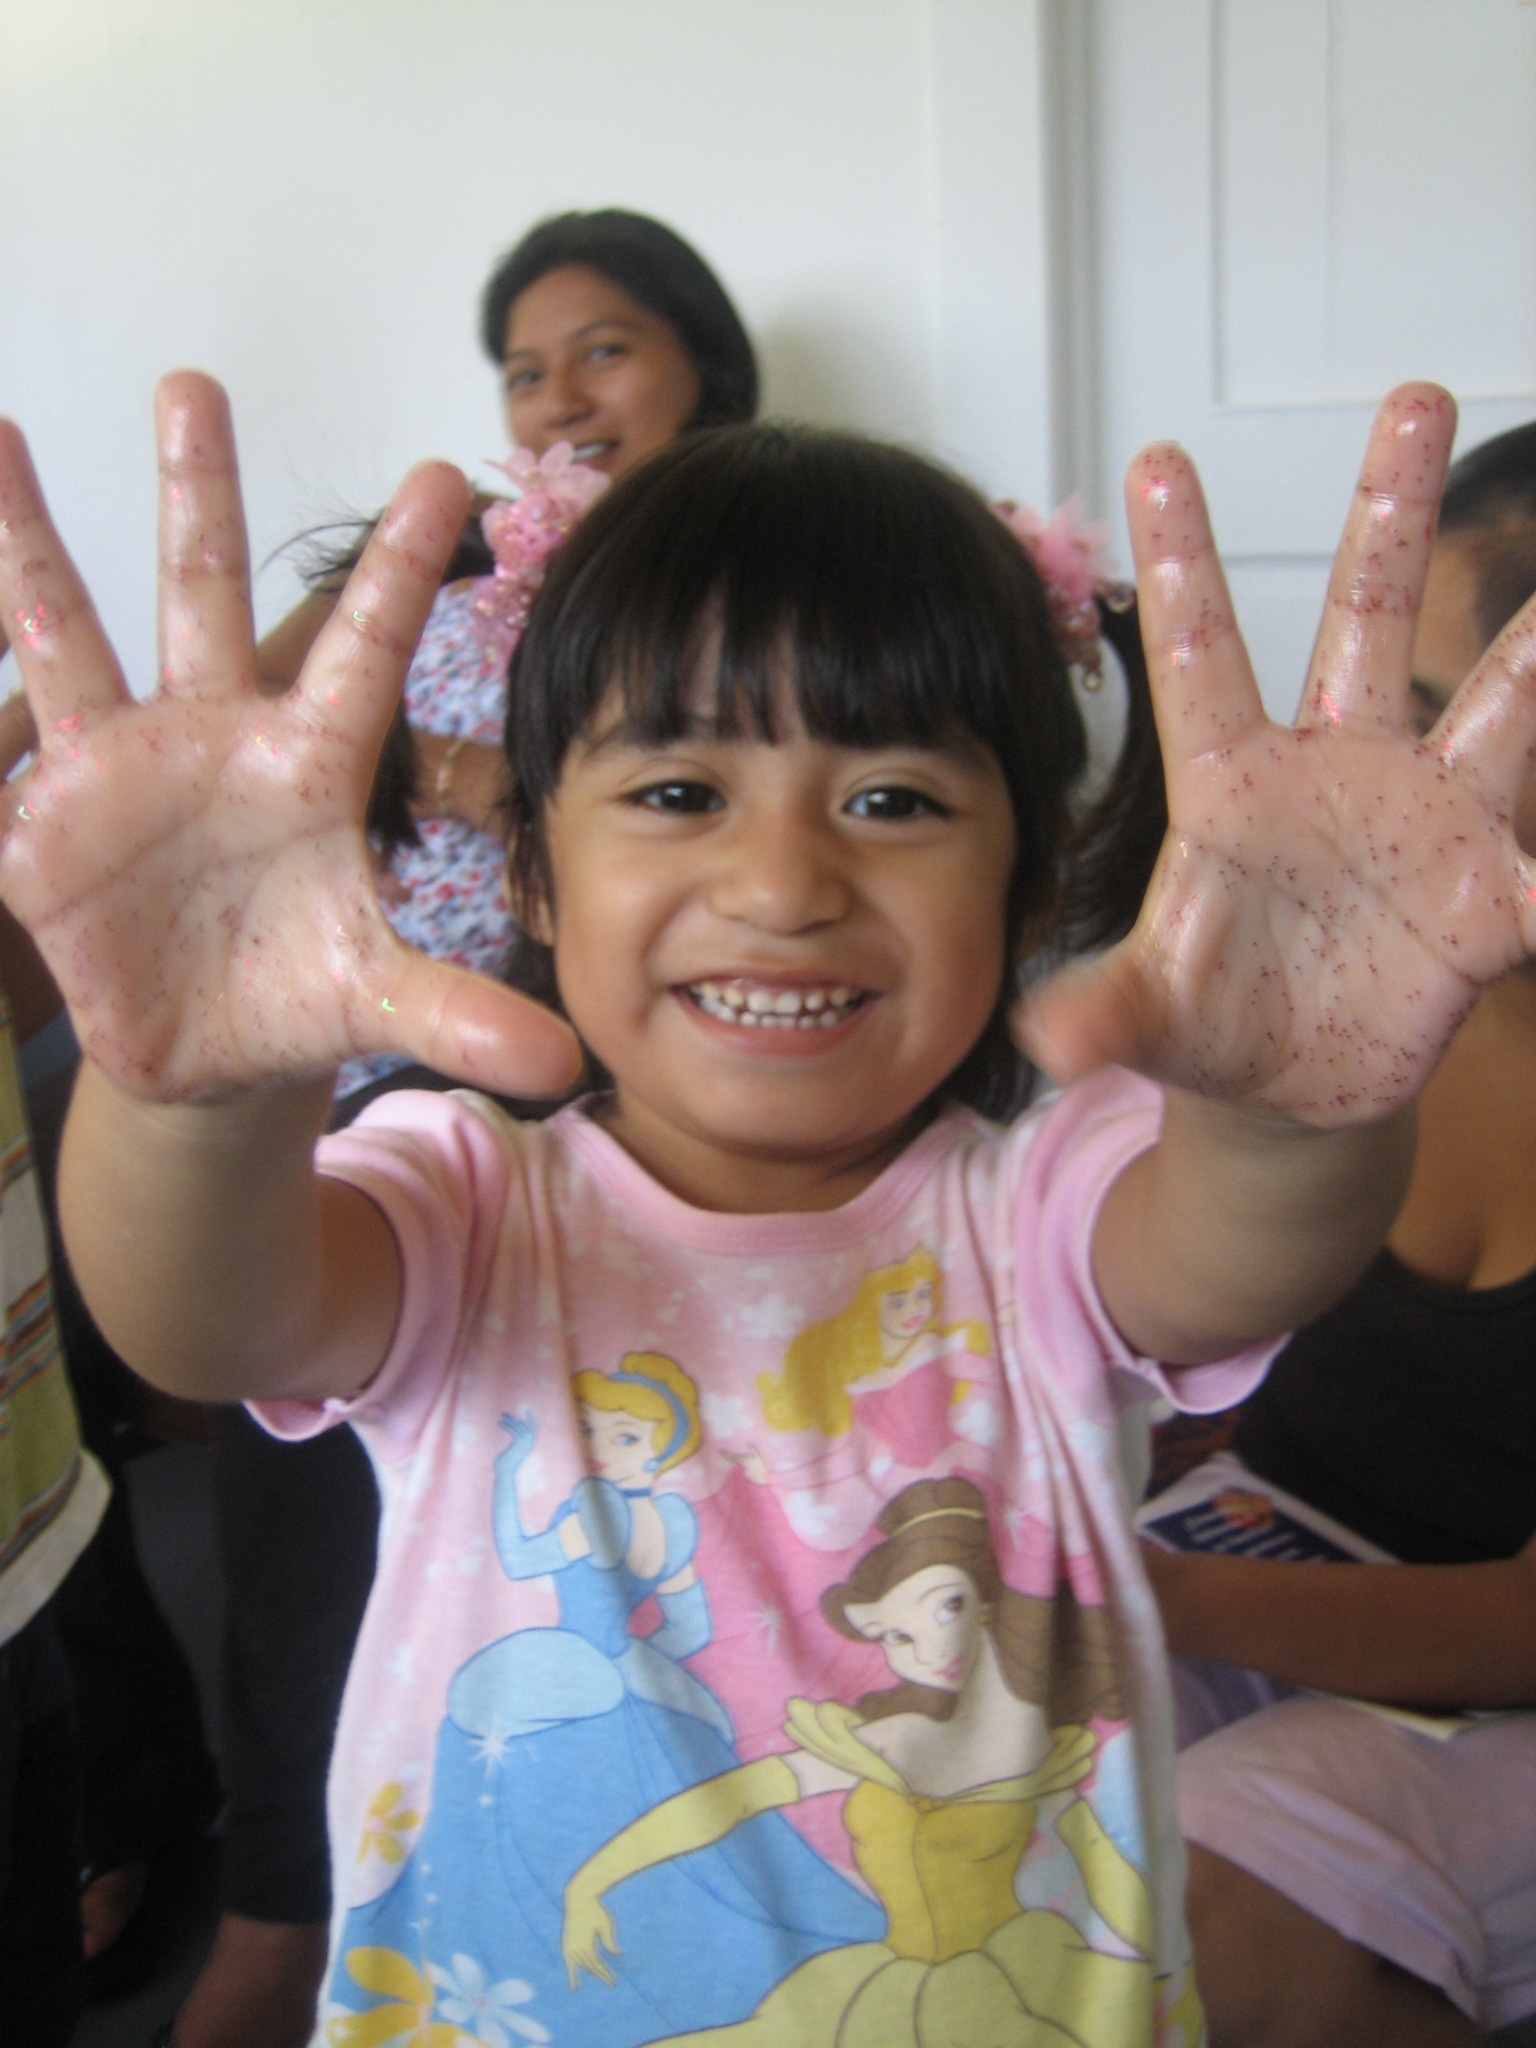 Child in a group with hands lifted up